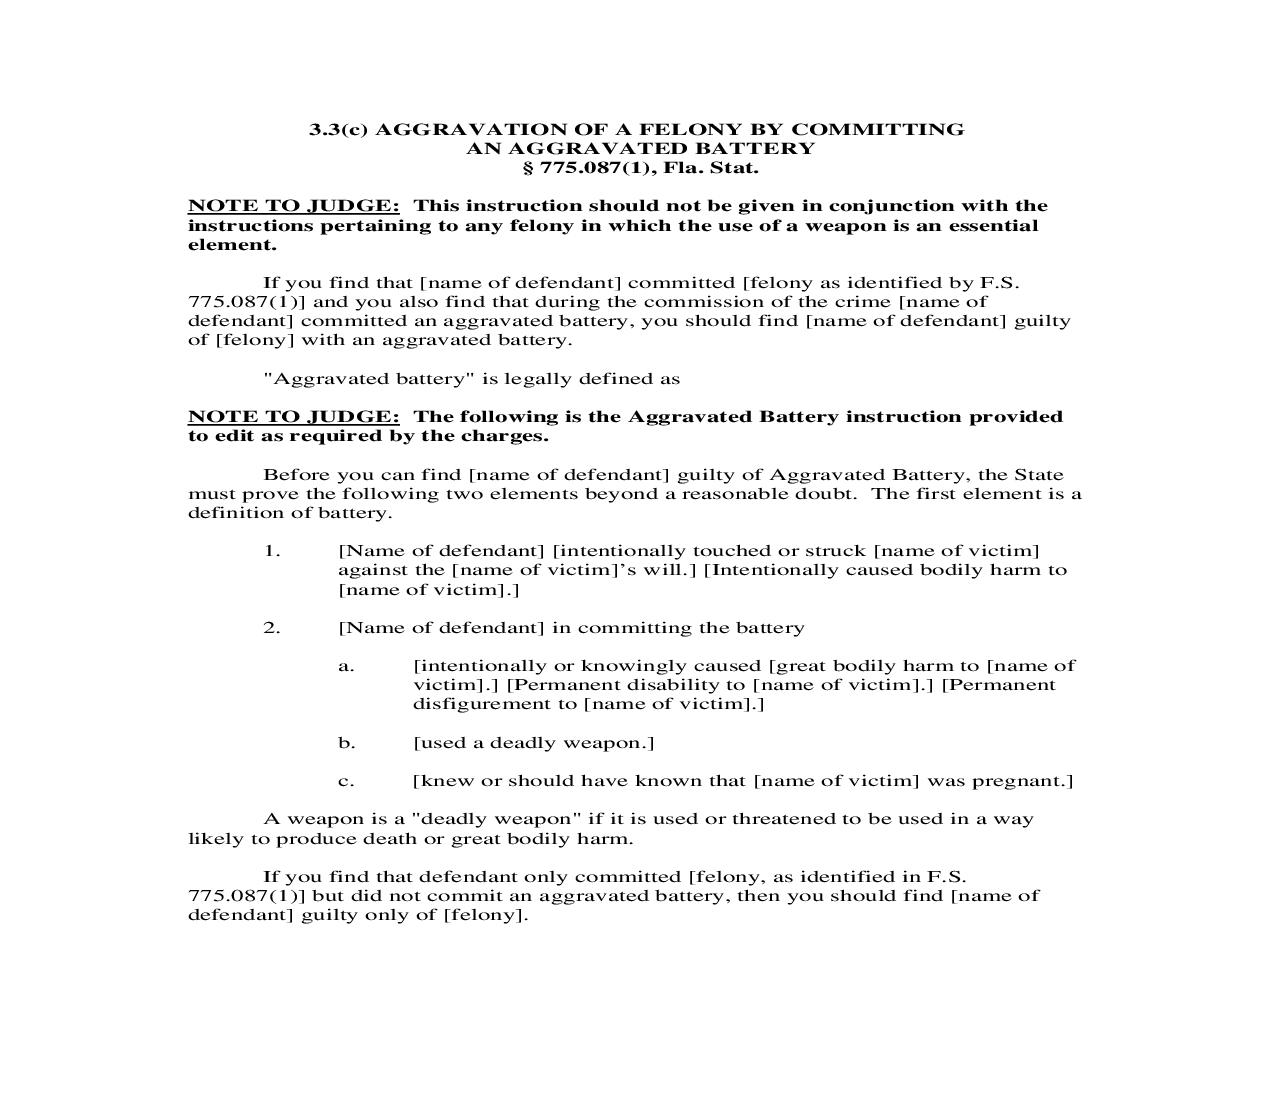 3.3(c). Aggravation of a Felony by Committing an Aggravated Battery   Pdf Doc Docx   Florida_JI